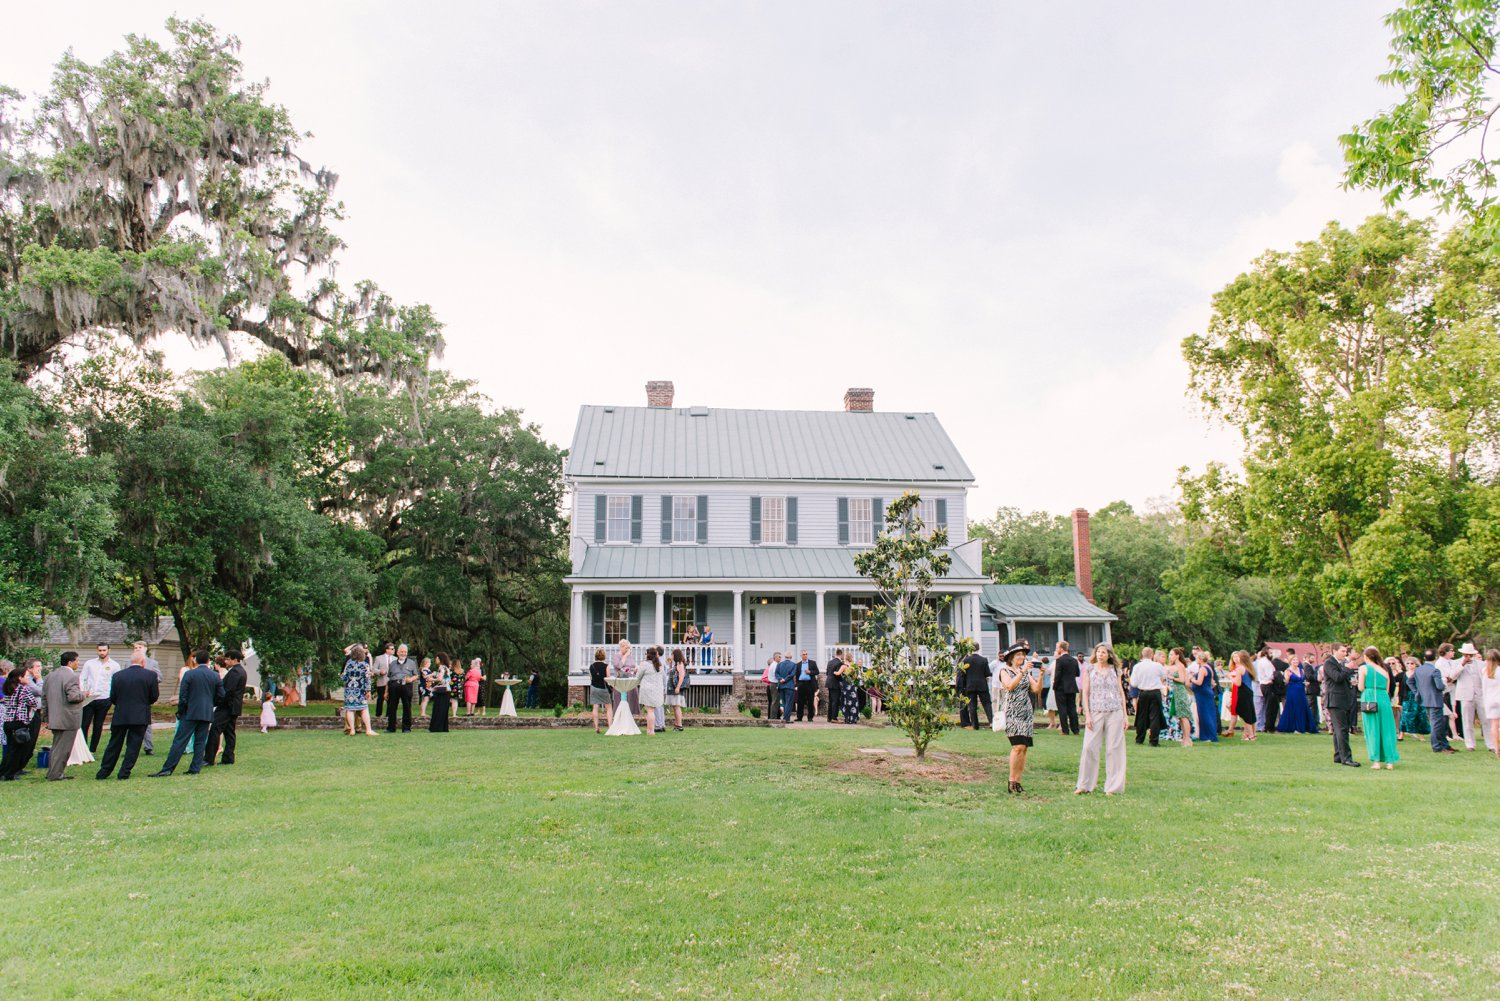 Lindsey_A_Miller_Photography_mcleod_plantation_wedding_charleston_south_carolina_clear_tent_spring_mod_events_066.jpg